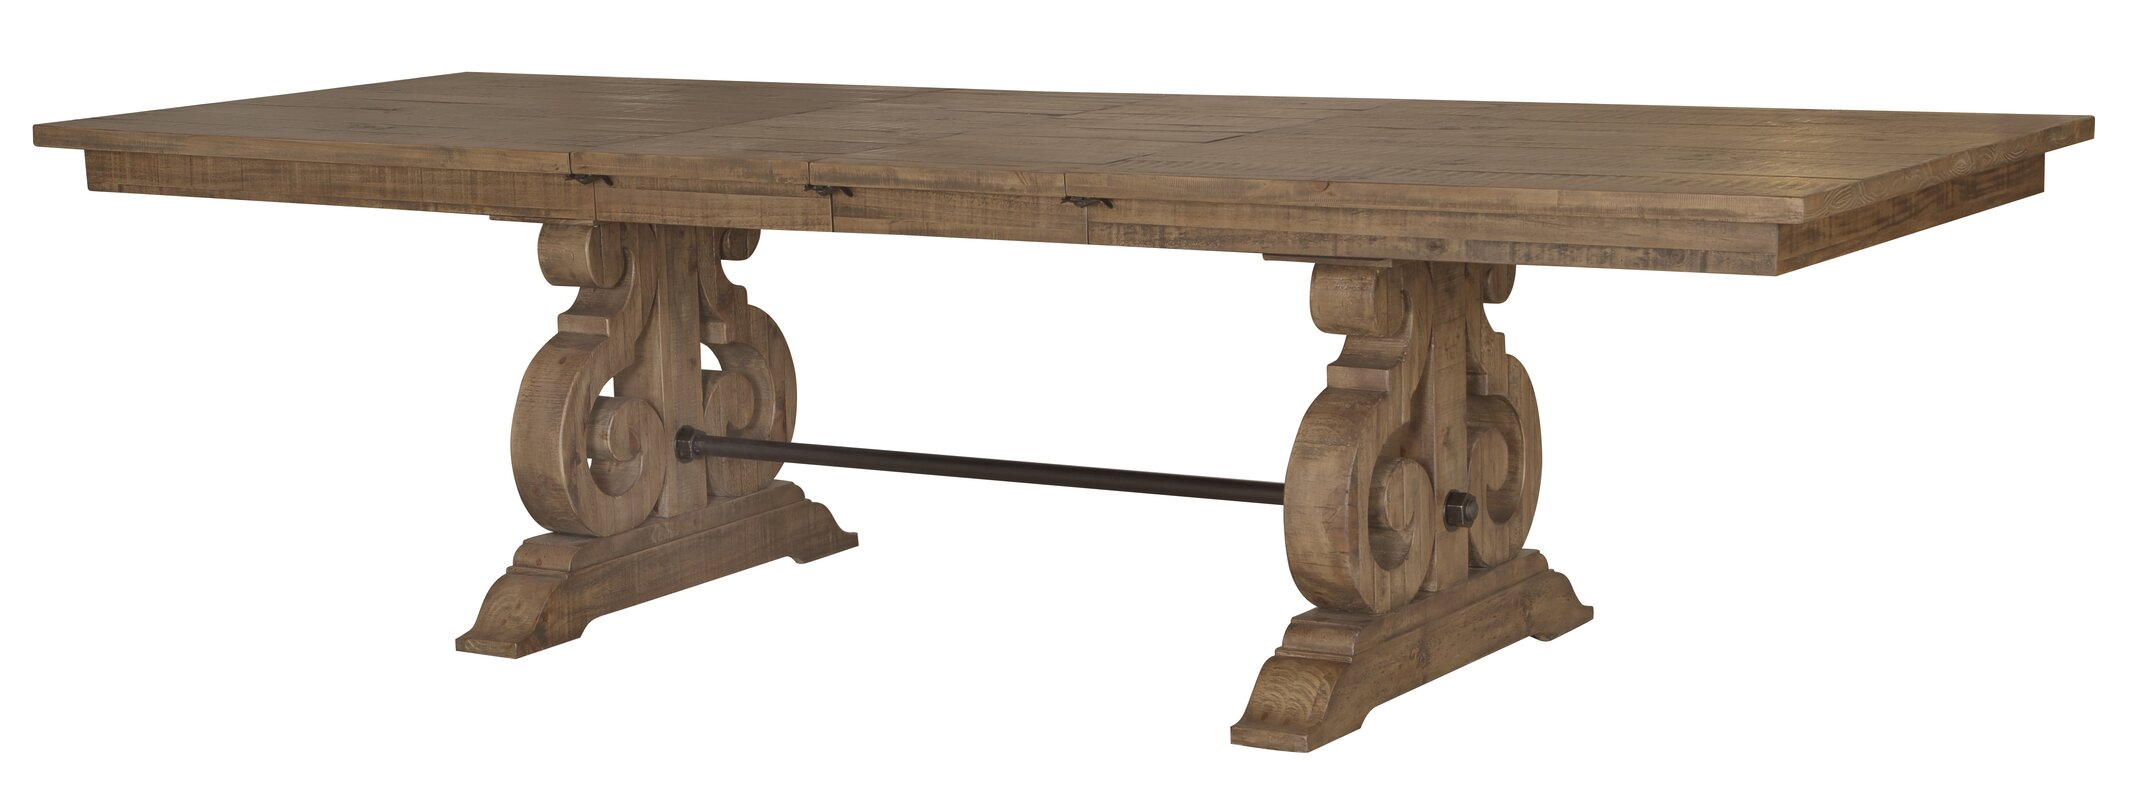 Devereaux Rectangular Dining Table #farmhousestyle #farmtable #diningtable